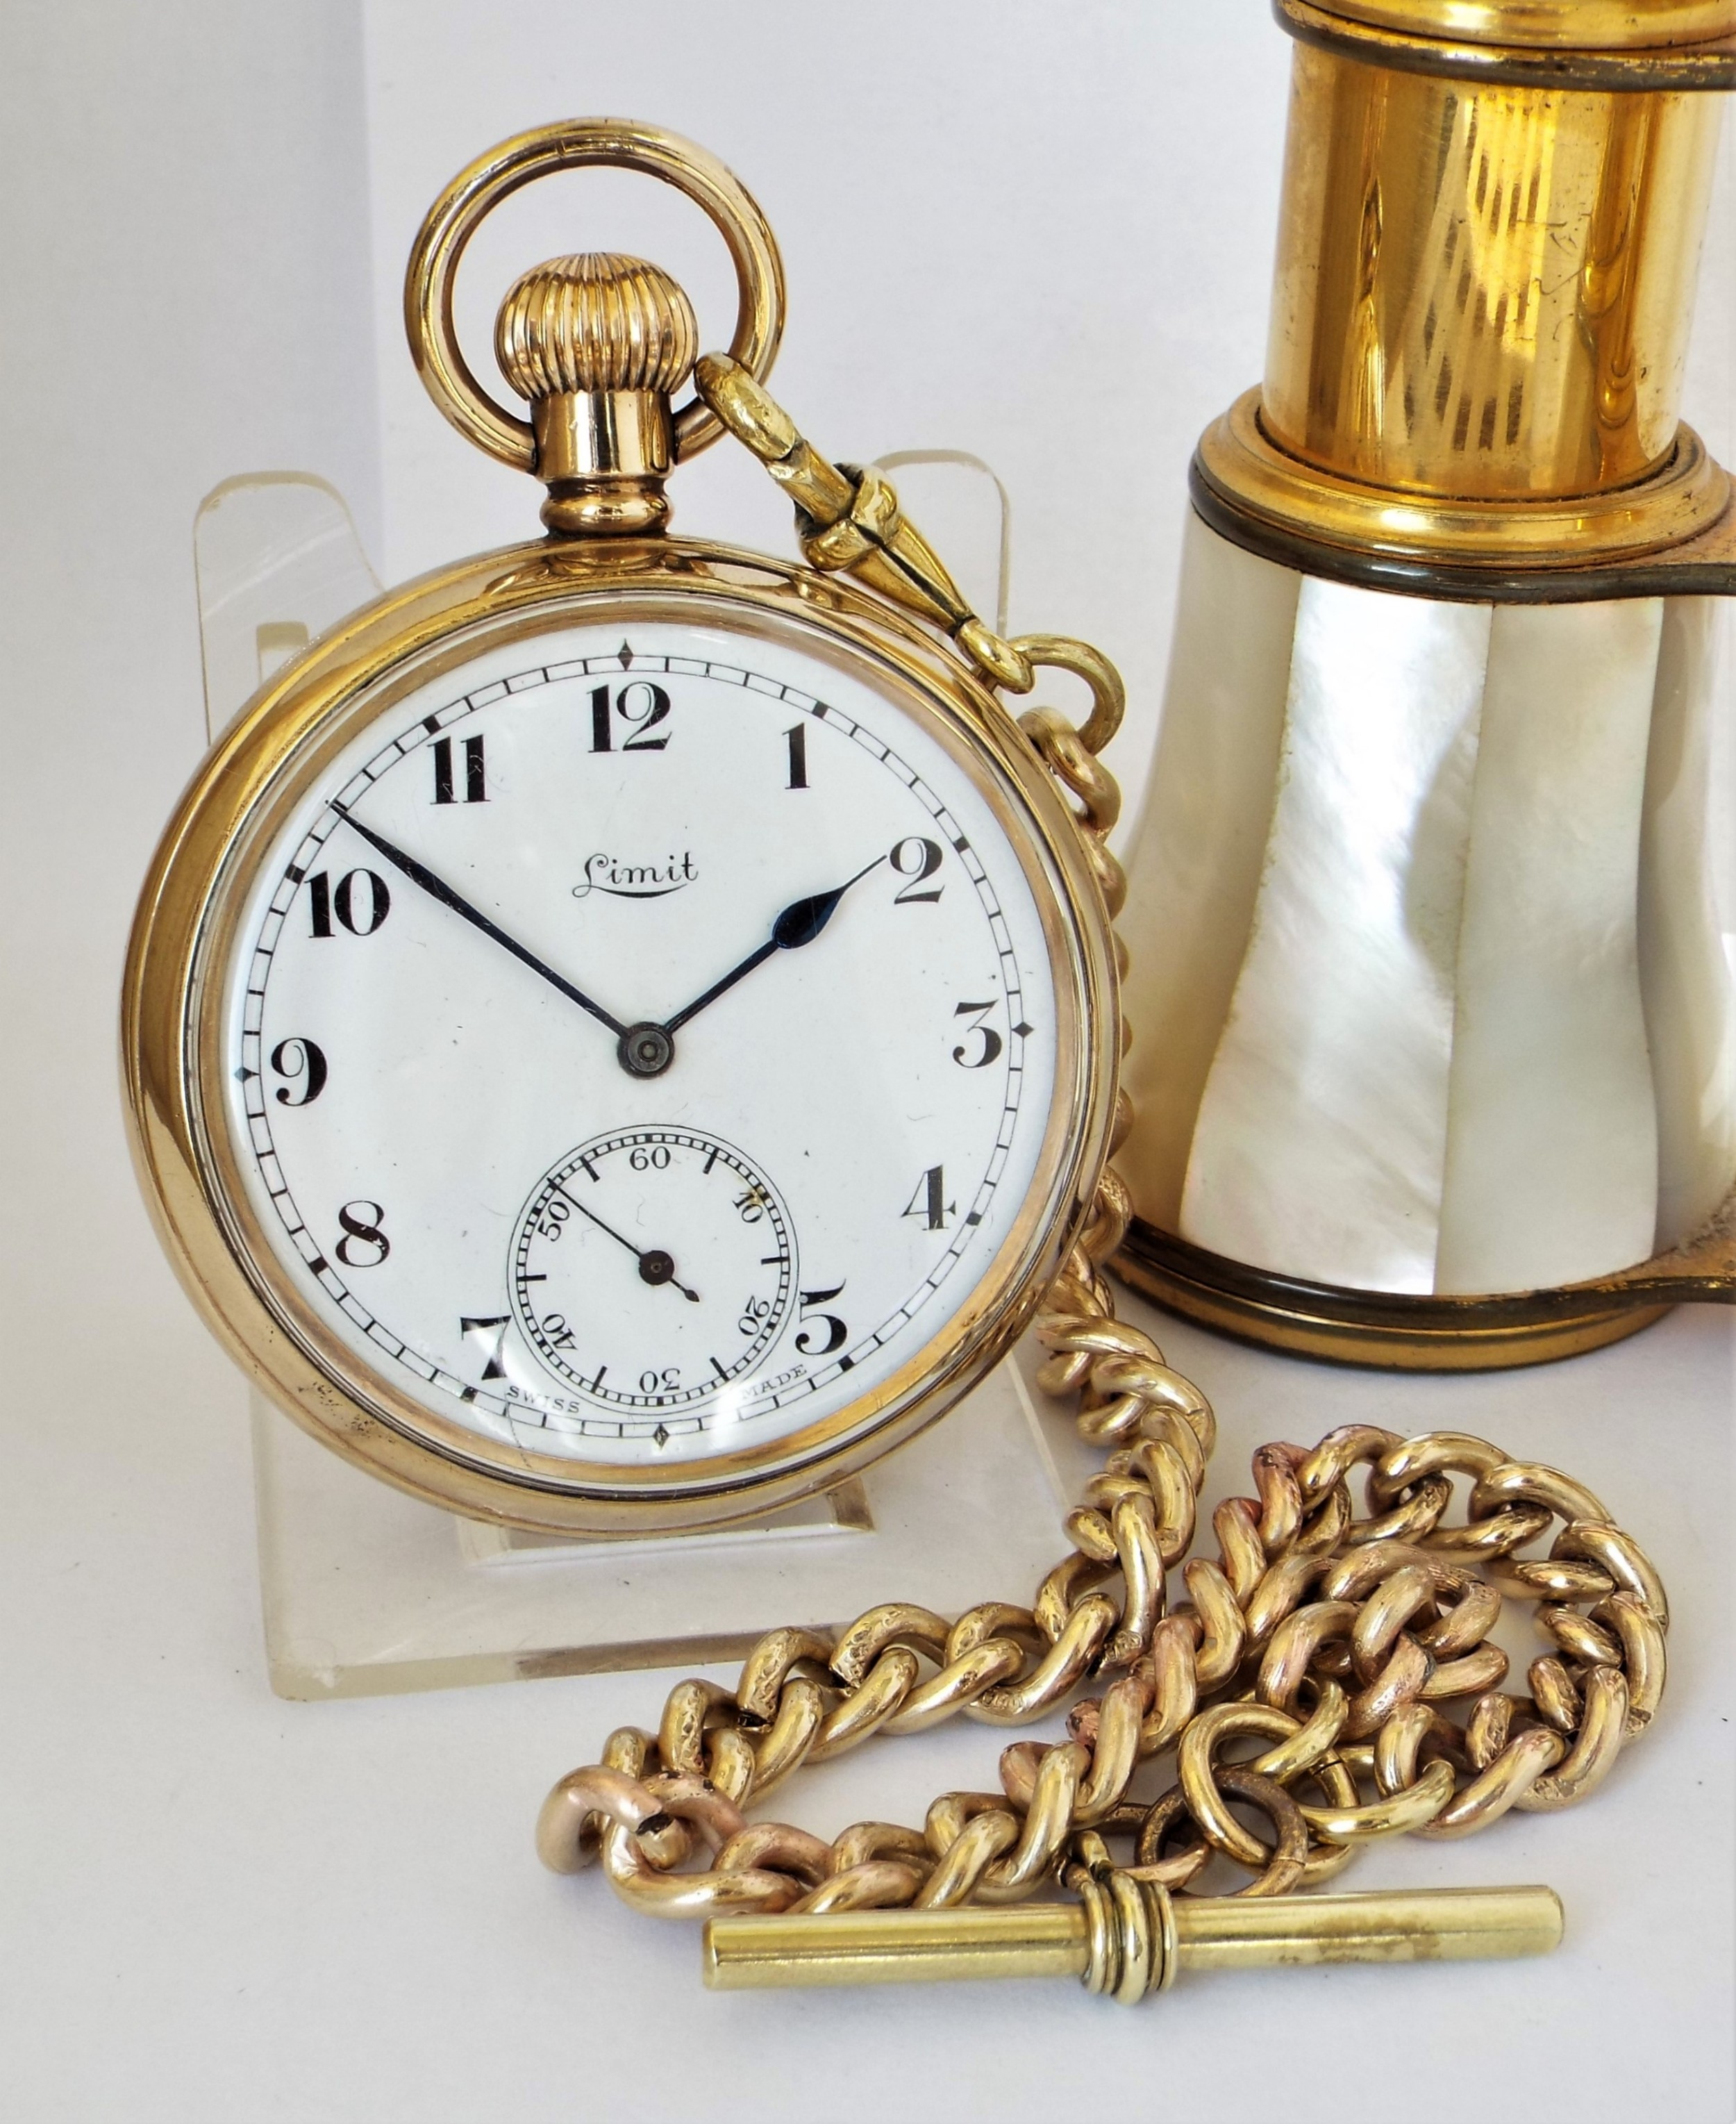 a 1920s limit pocket watch and chain